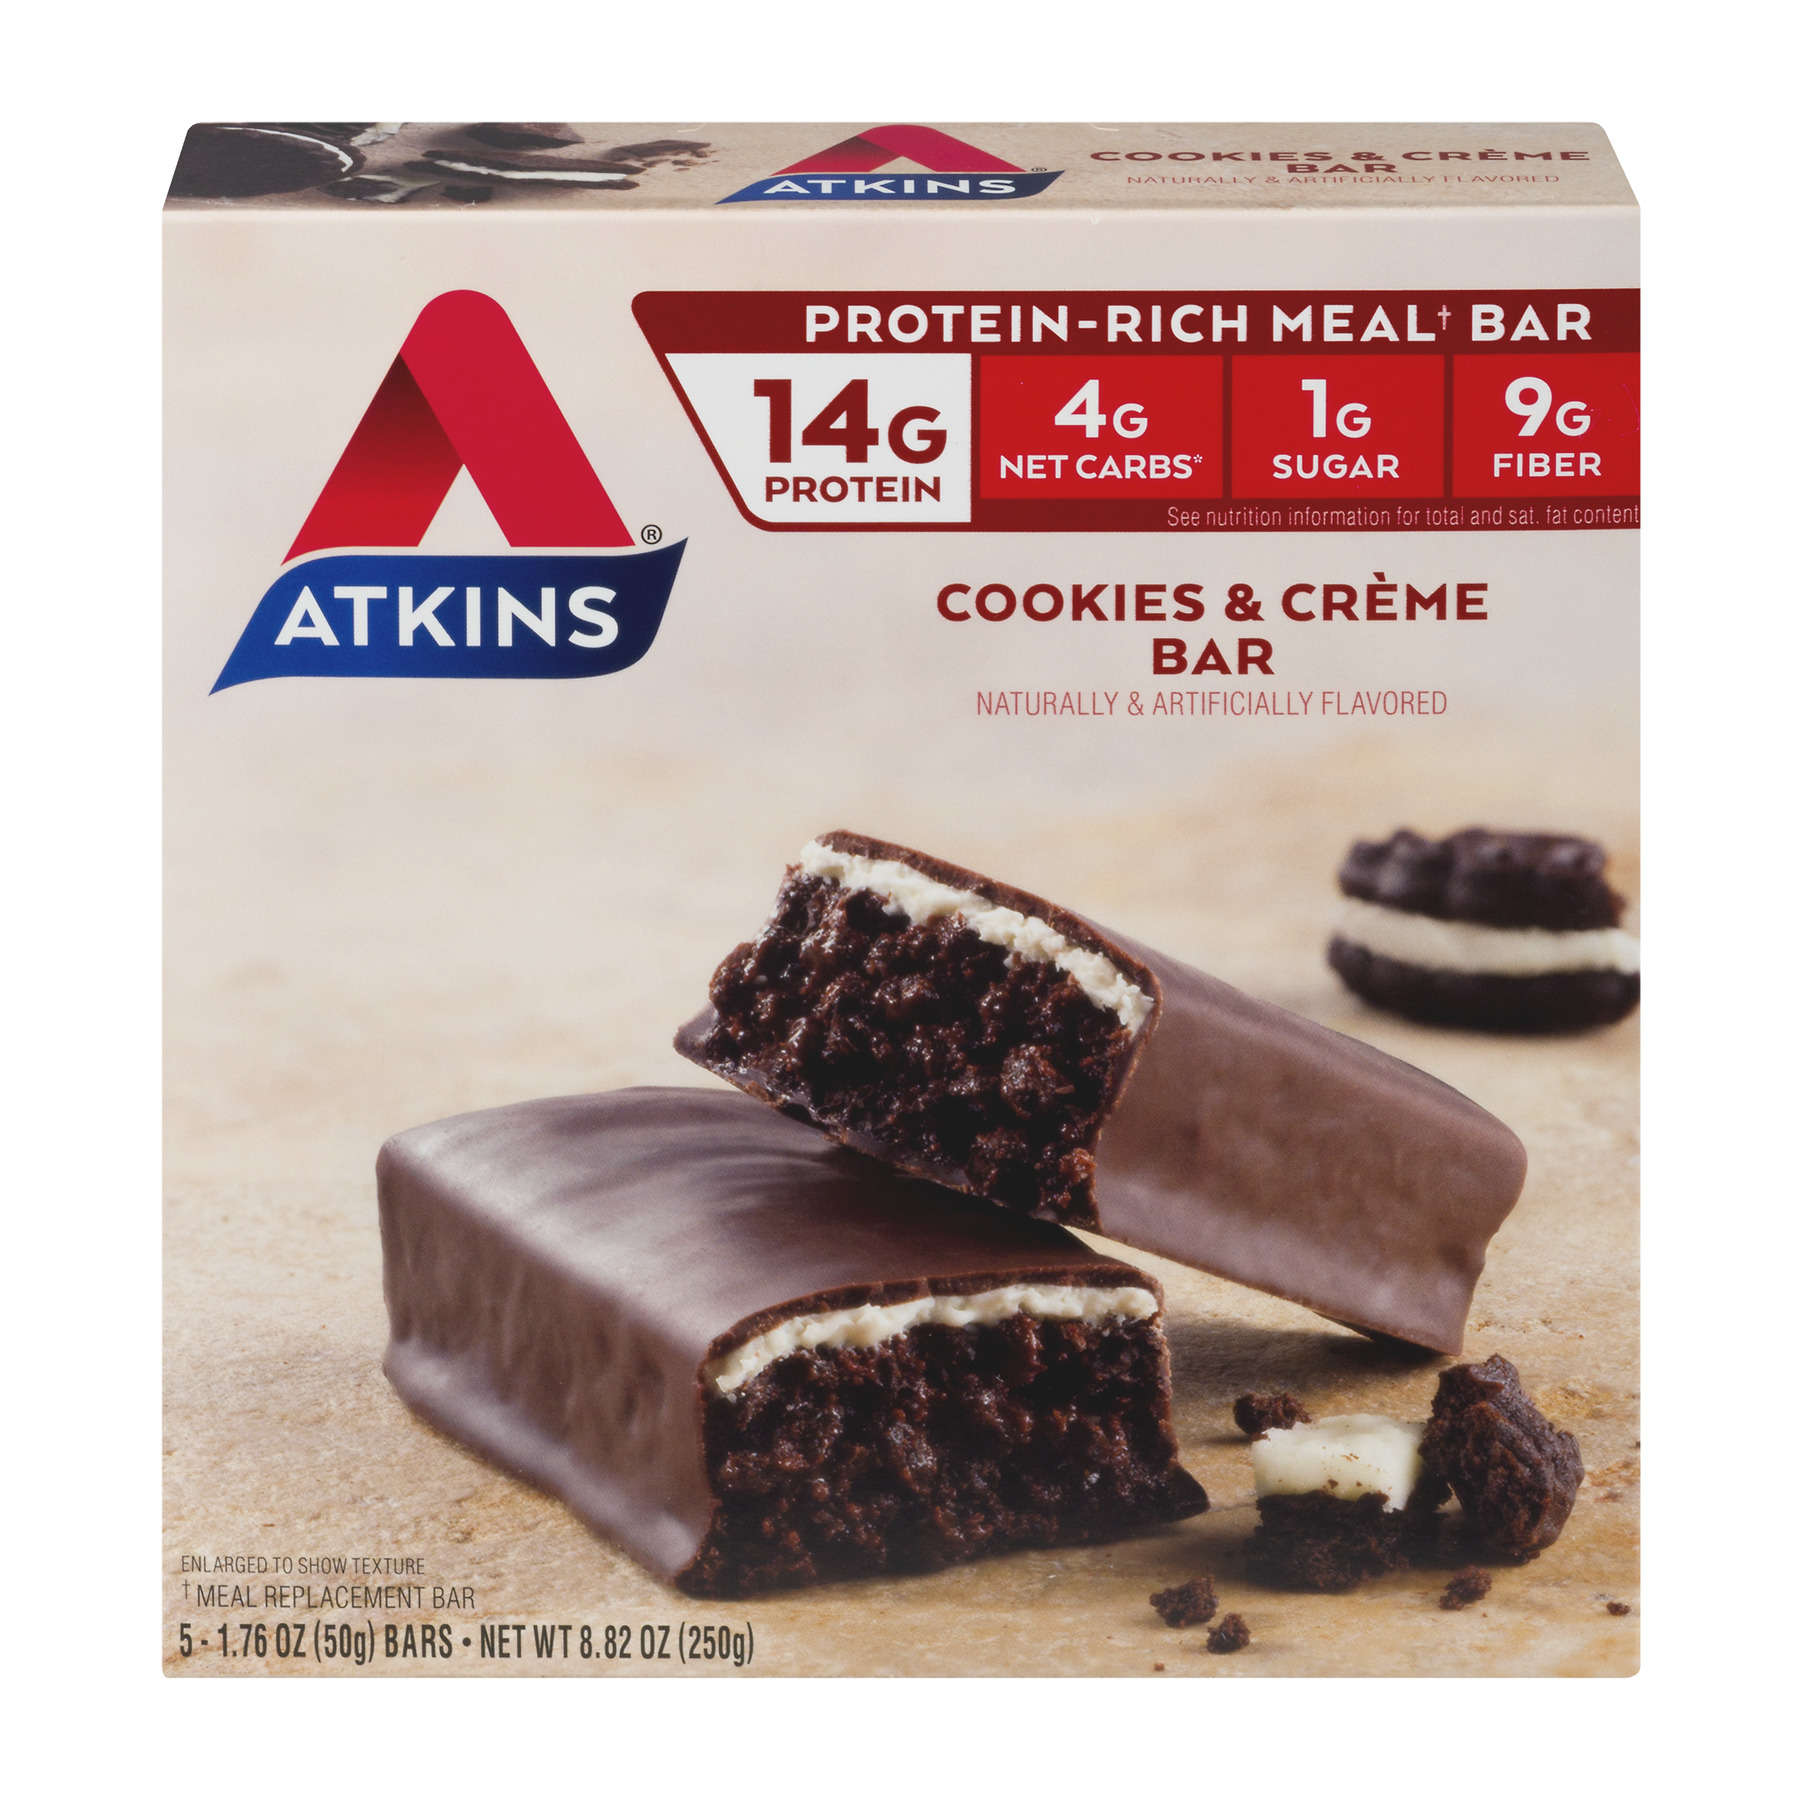 Atkins Cookies N Creme Bar, 1.8oz, 5-pack (Meal Replacement)